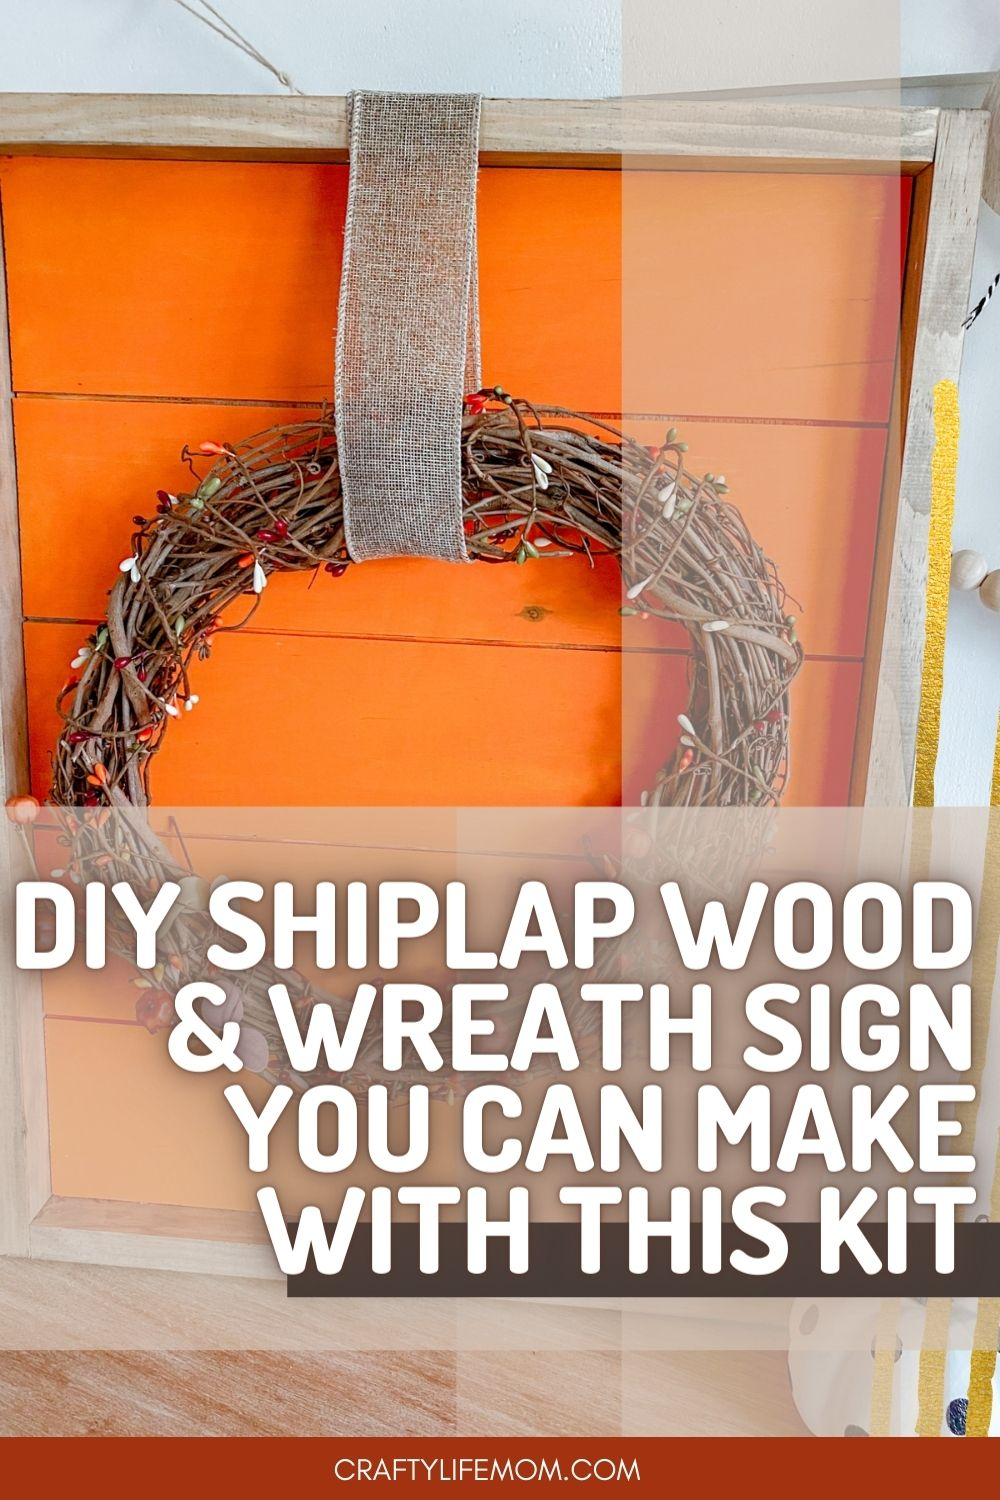 Create Your Own Shiplap Wood Sign with a fall wreath with this DIY Kit. The kits come with everything you need to paint and make your own shiplap sign. Display the sign within your home decor for a unique Fall or Halloween display. #shiplap #shiplapsign